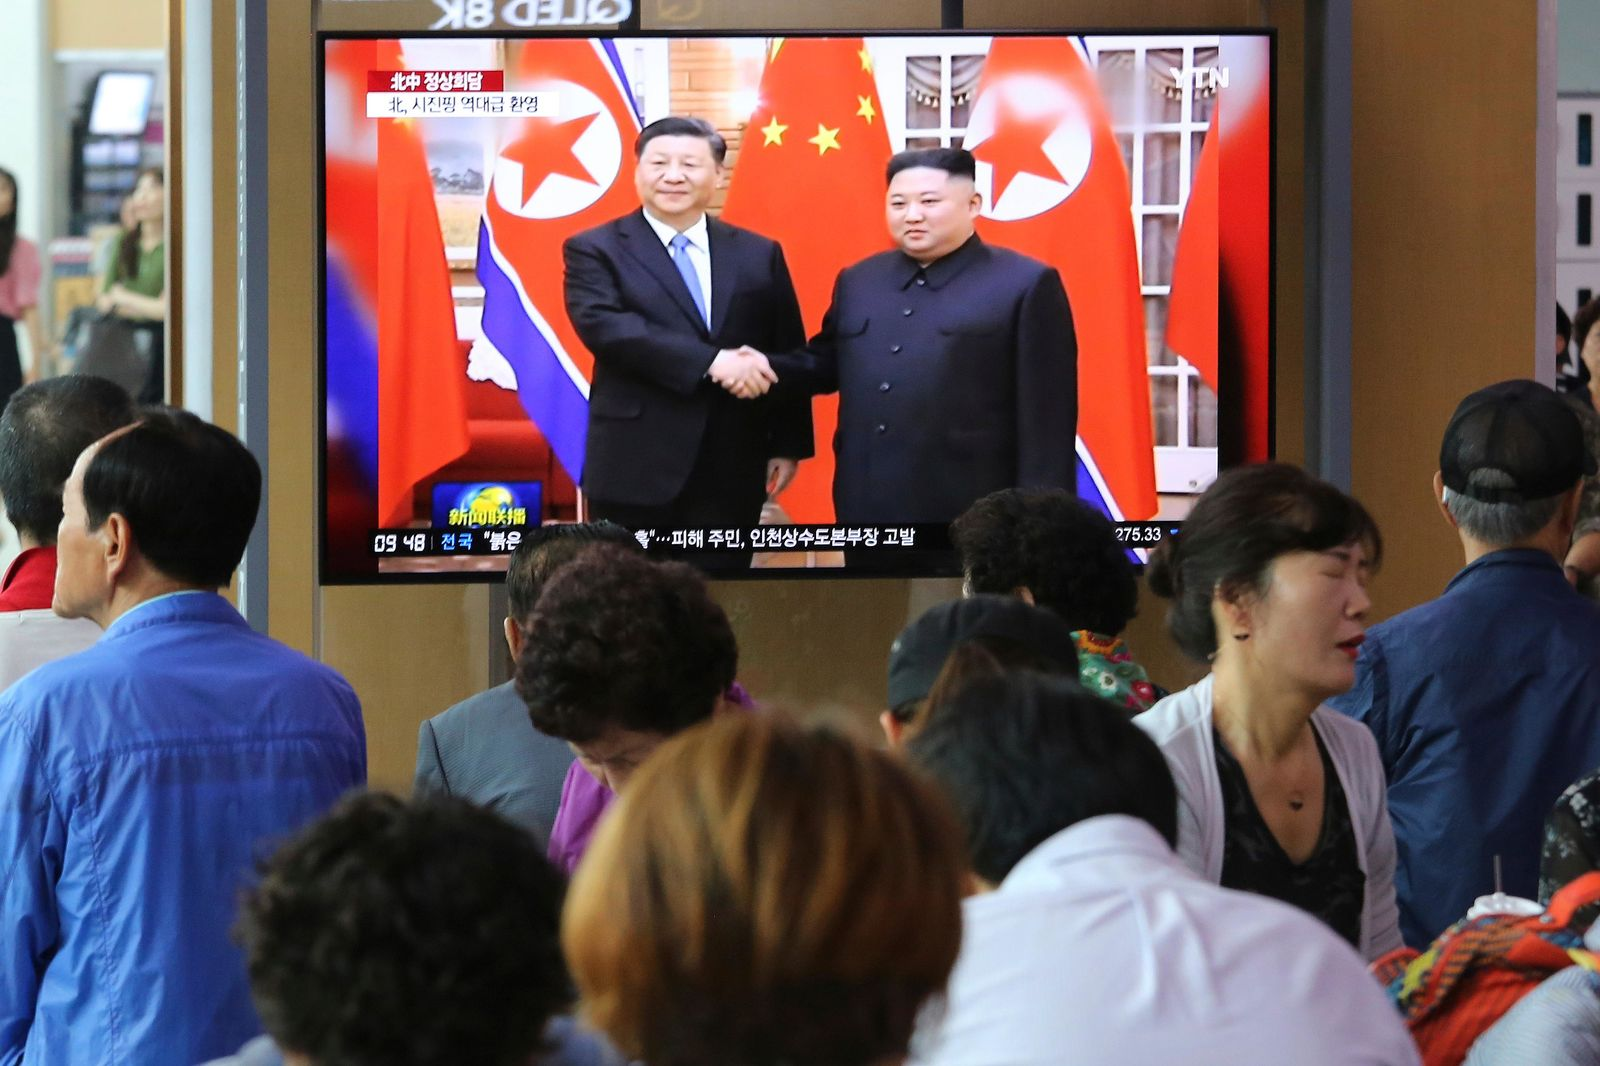 "People watch a TV screen showing North Korean leader Kim Jong Un, right, welcoming Chinese President Xi Jinping, at the Seoul Railway Station in Seoul, South Korea, Friday, June 21, 2019. North Korea's state media says leader Kim Jong Un and Chinese President Xi Jinping held broad discussions over the political situation surrounding the Korean Peninsula and called for stronger bilateral ties in the face of ""serious and complicated changes"" in the region. (AP Photo/Ahn Young-joon)"